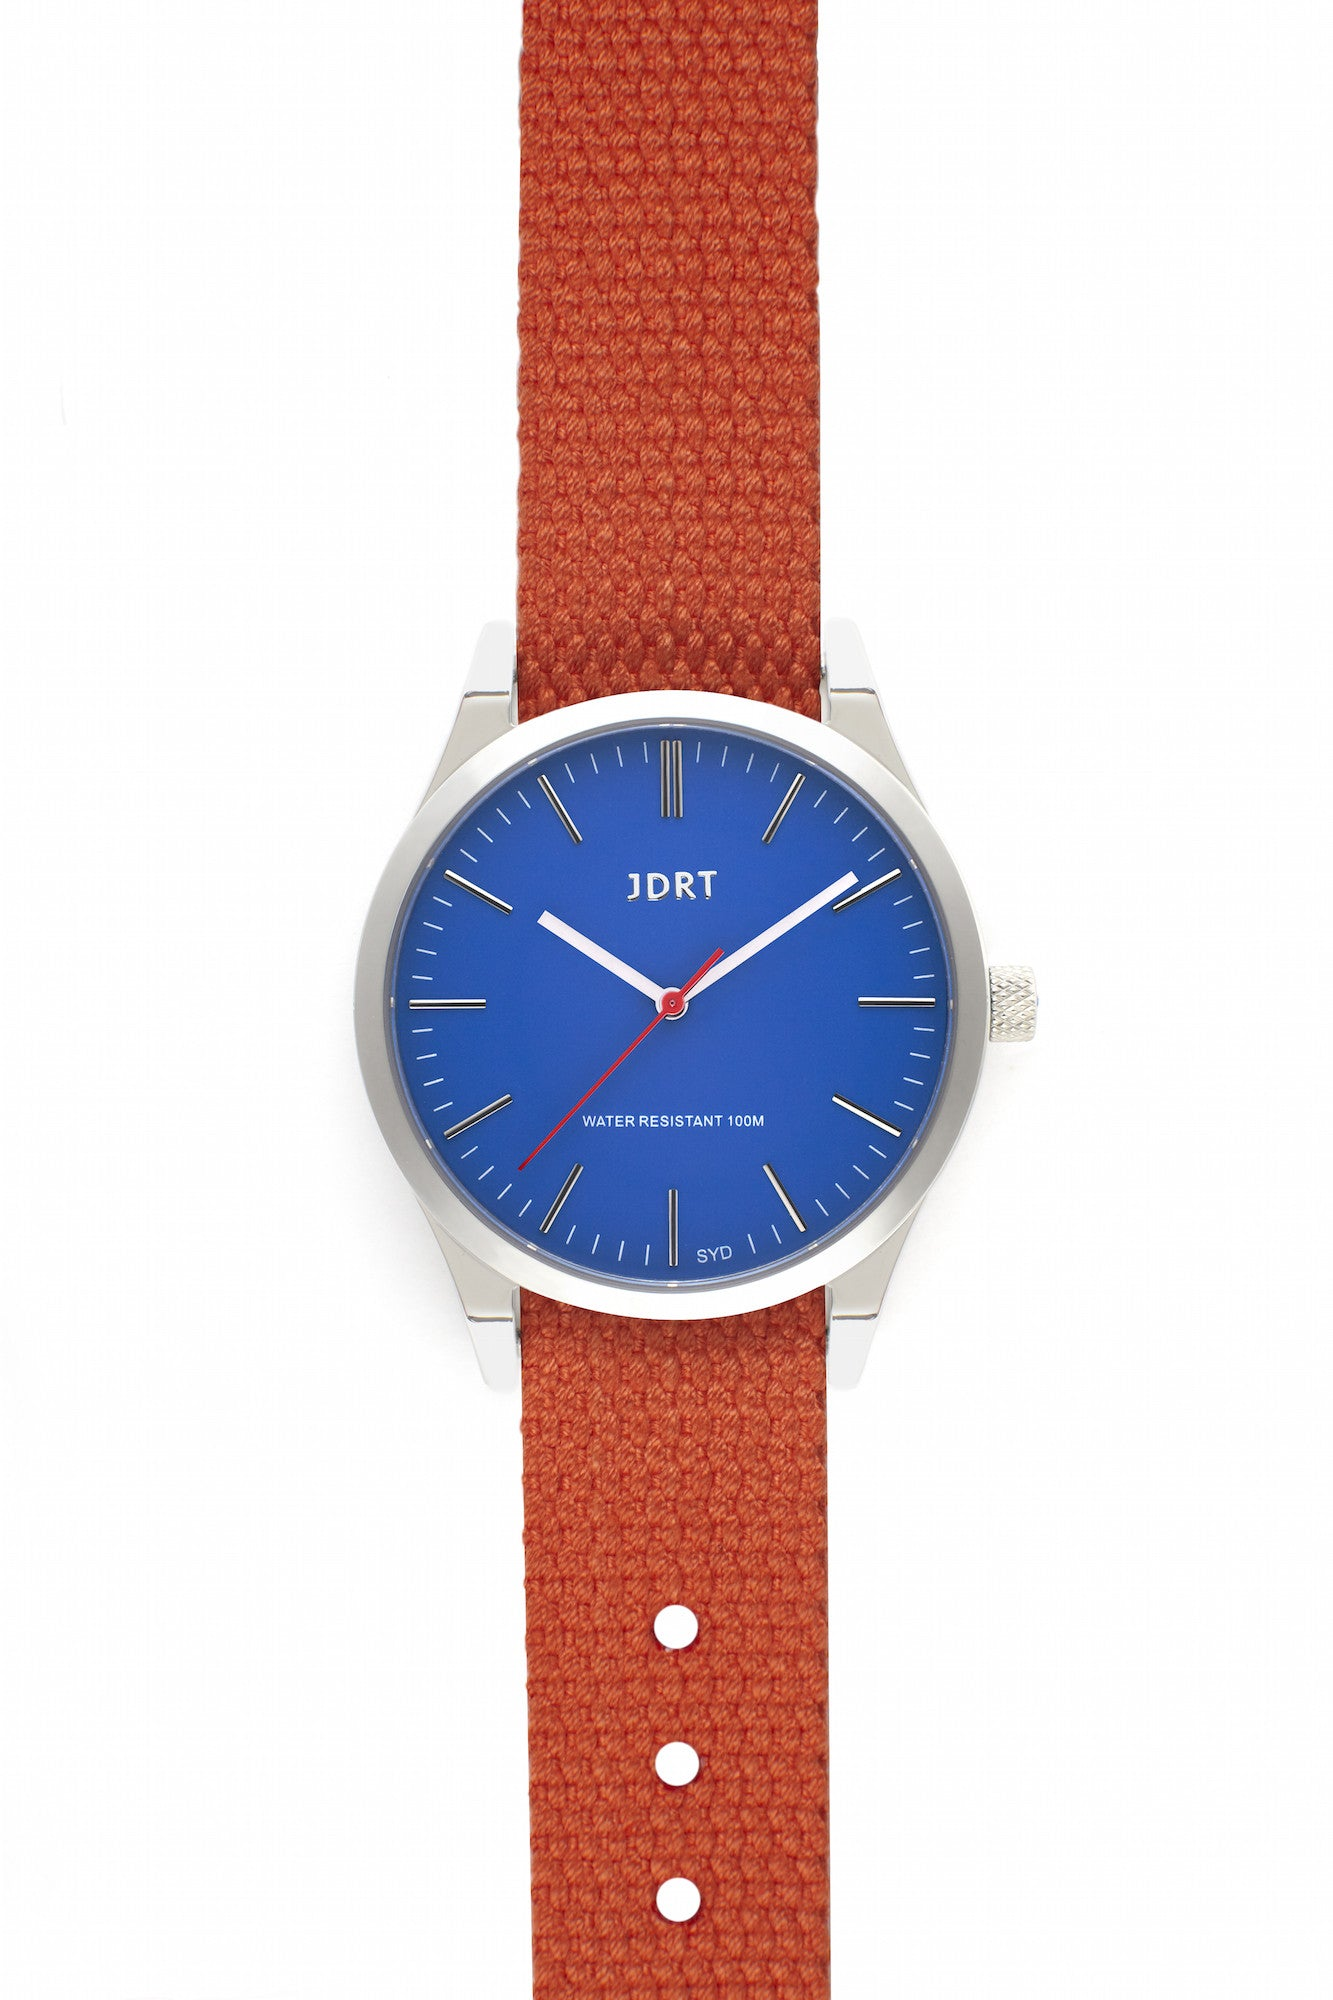 Azure Face with Mandarin Canvas Watch Band